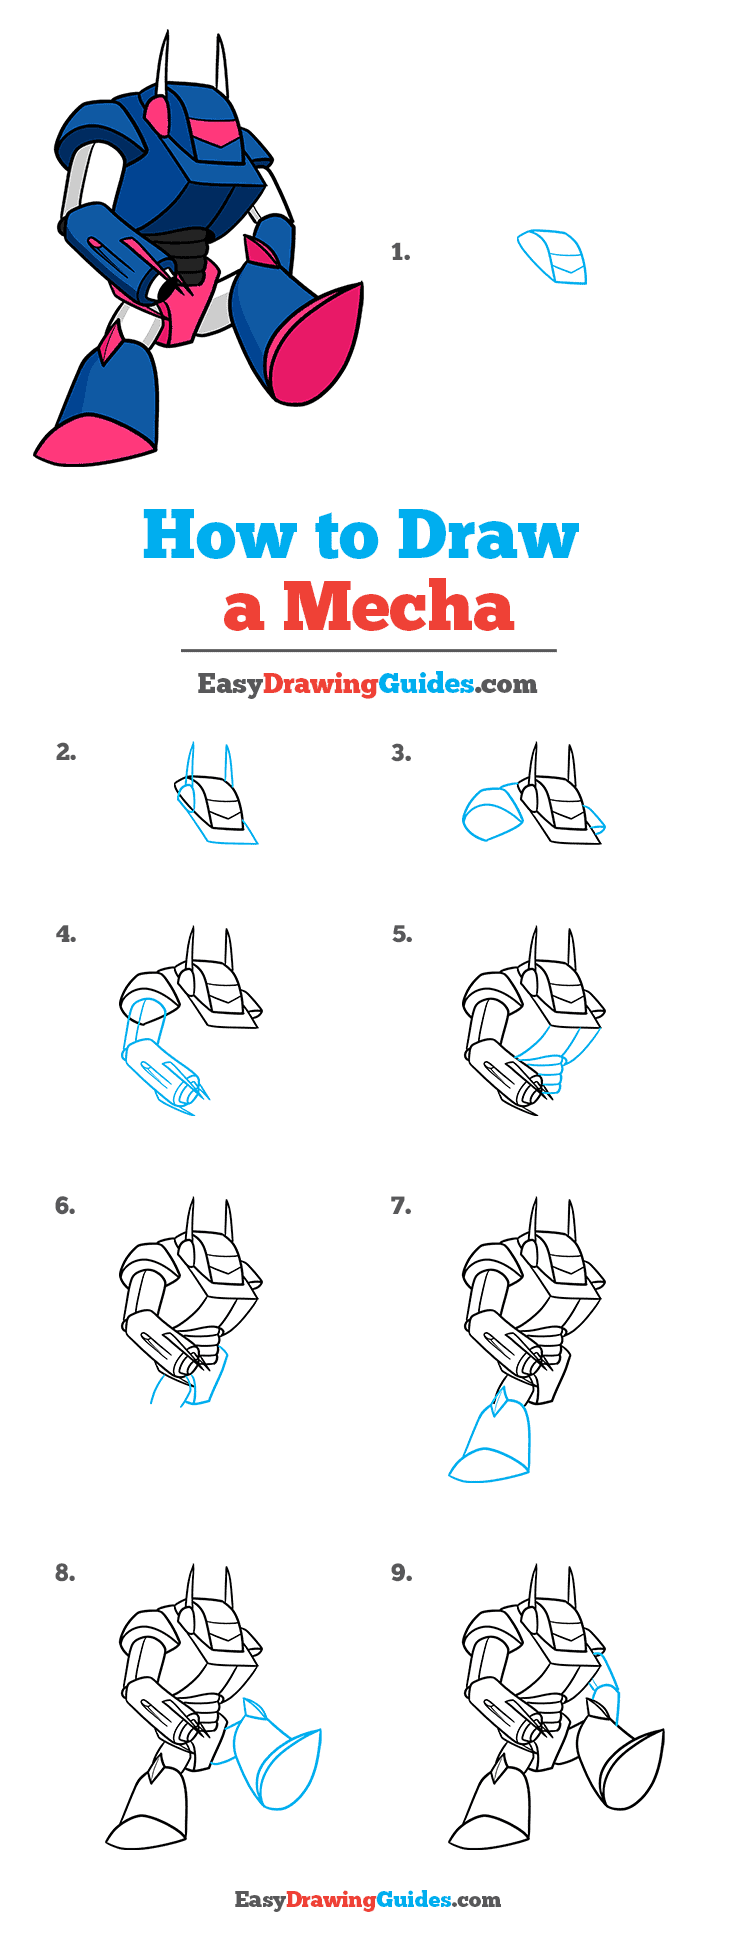 How to Draw a Mecha Step by Step Tutorial Image